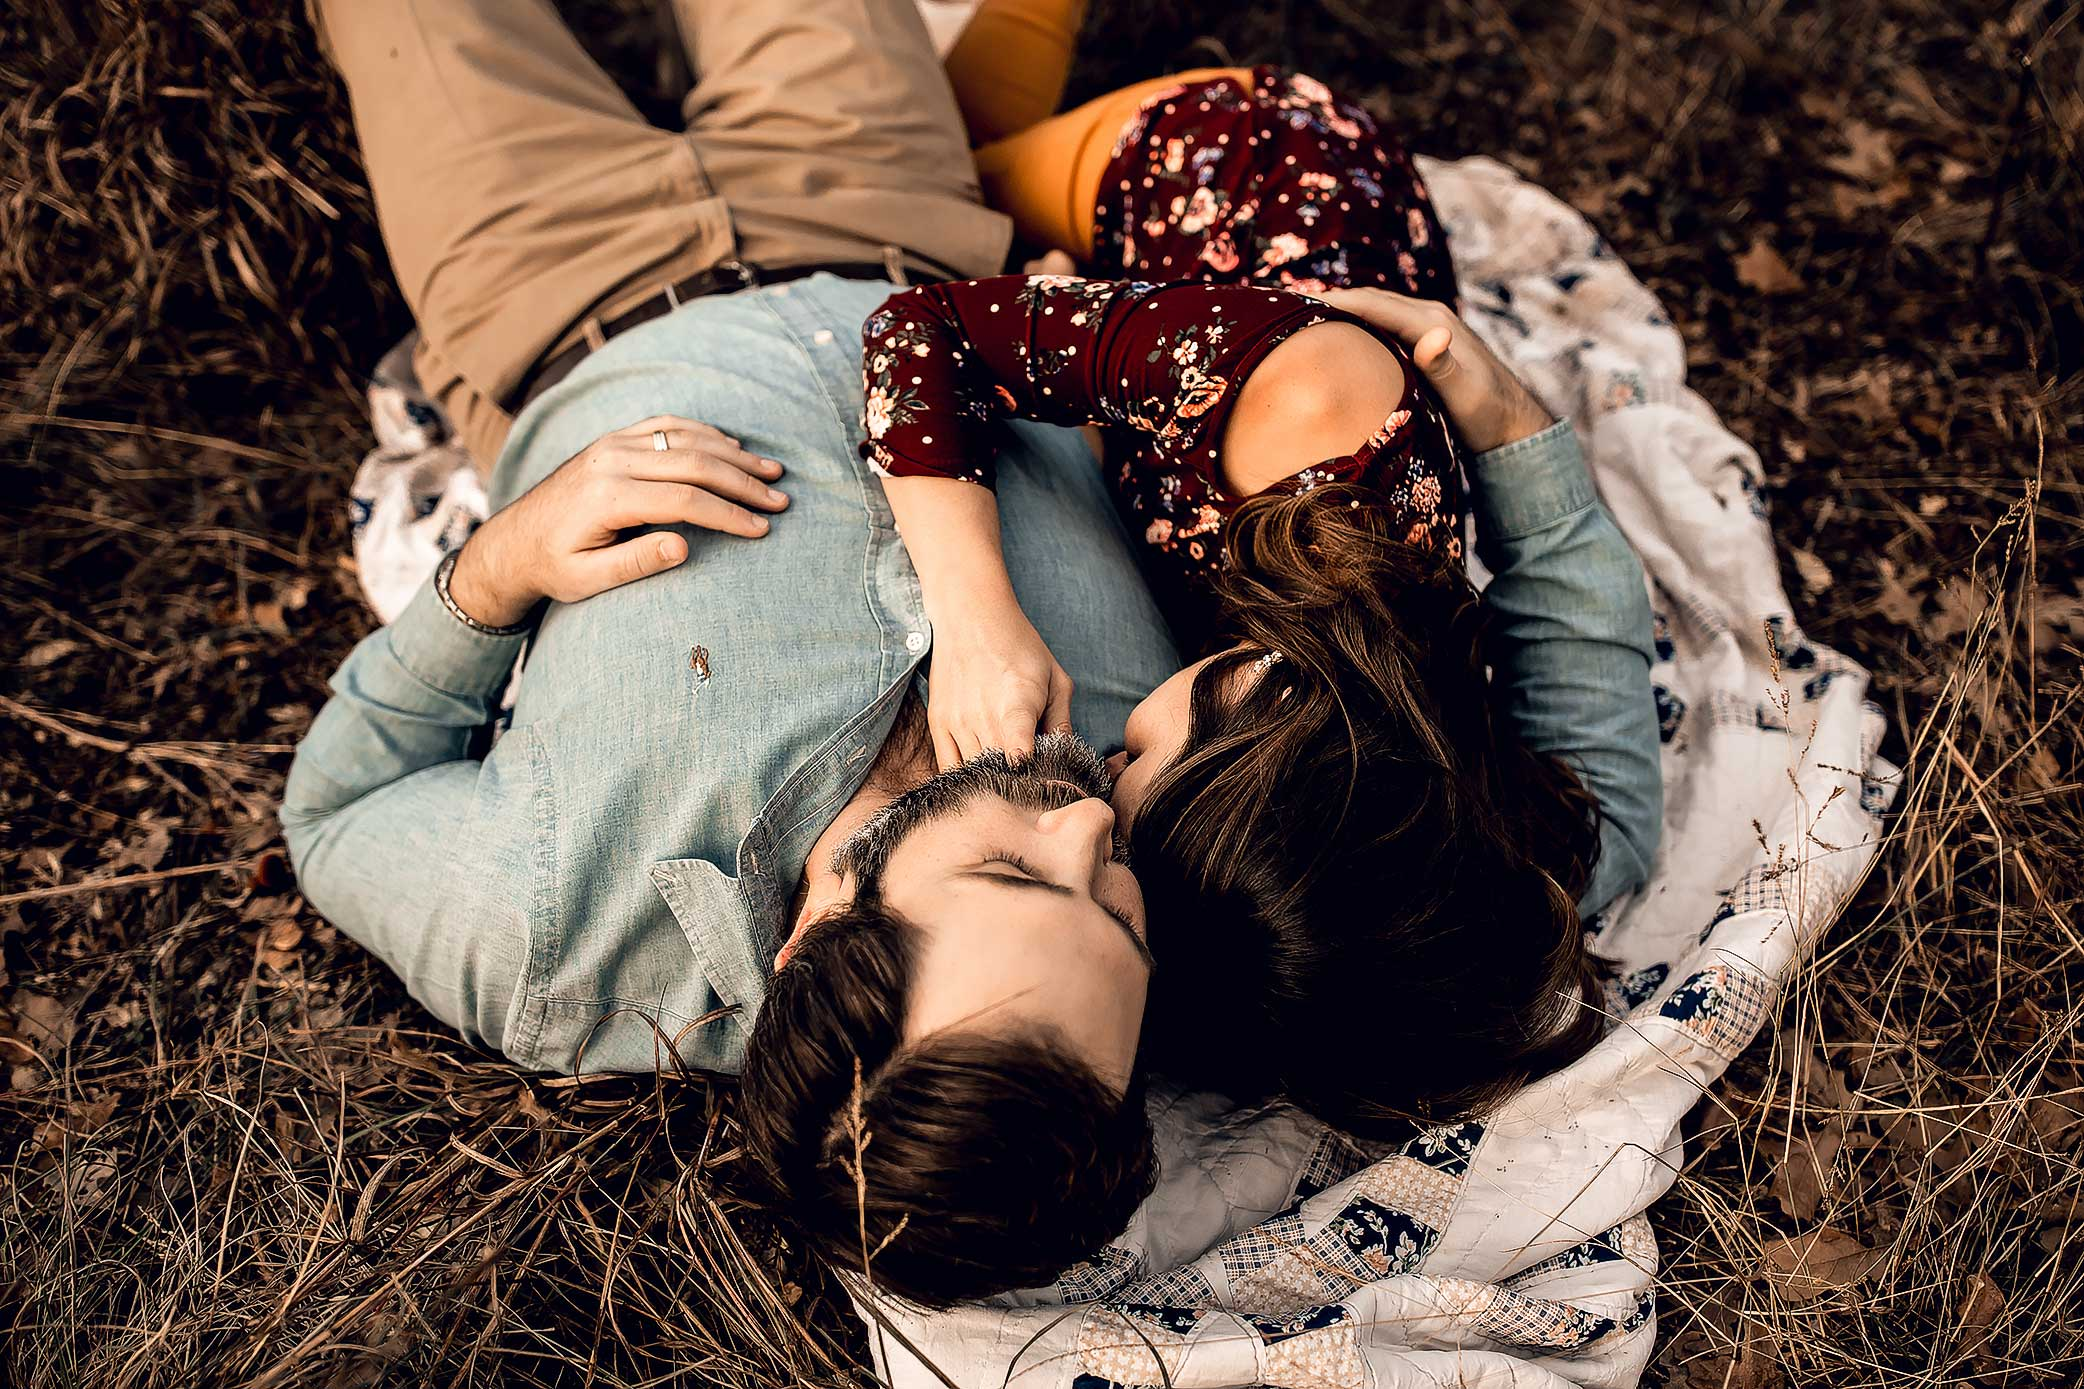 shelby-schiller-photography-couples-snuggled-and-laying-on-blanket.jpg